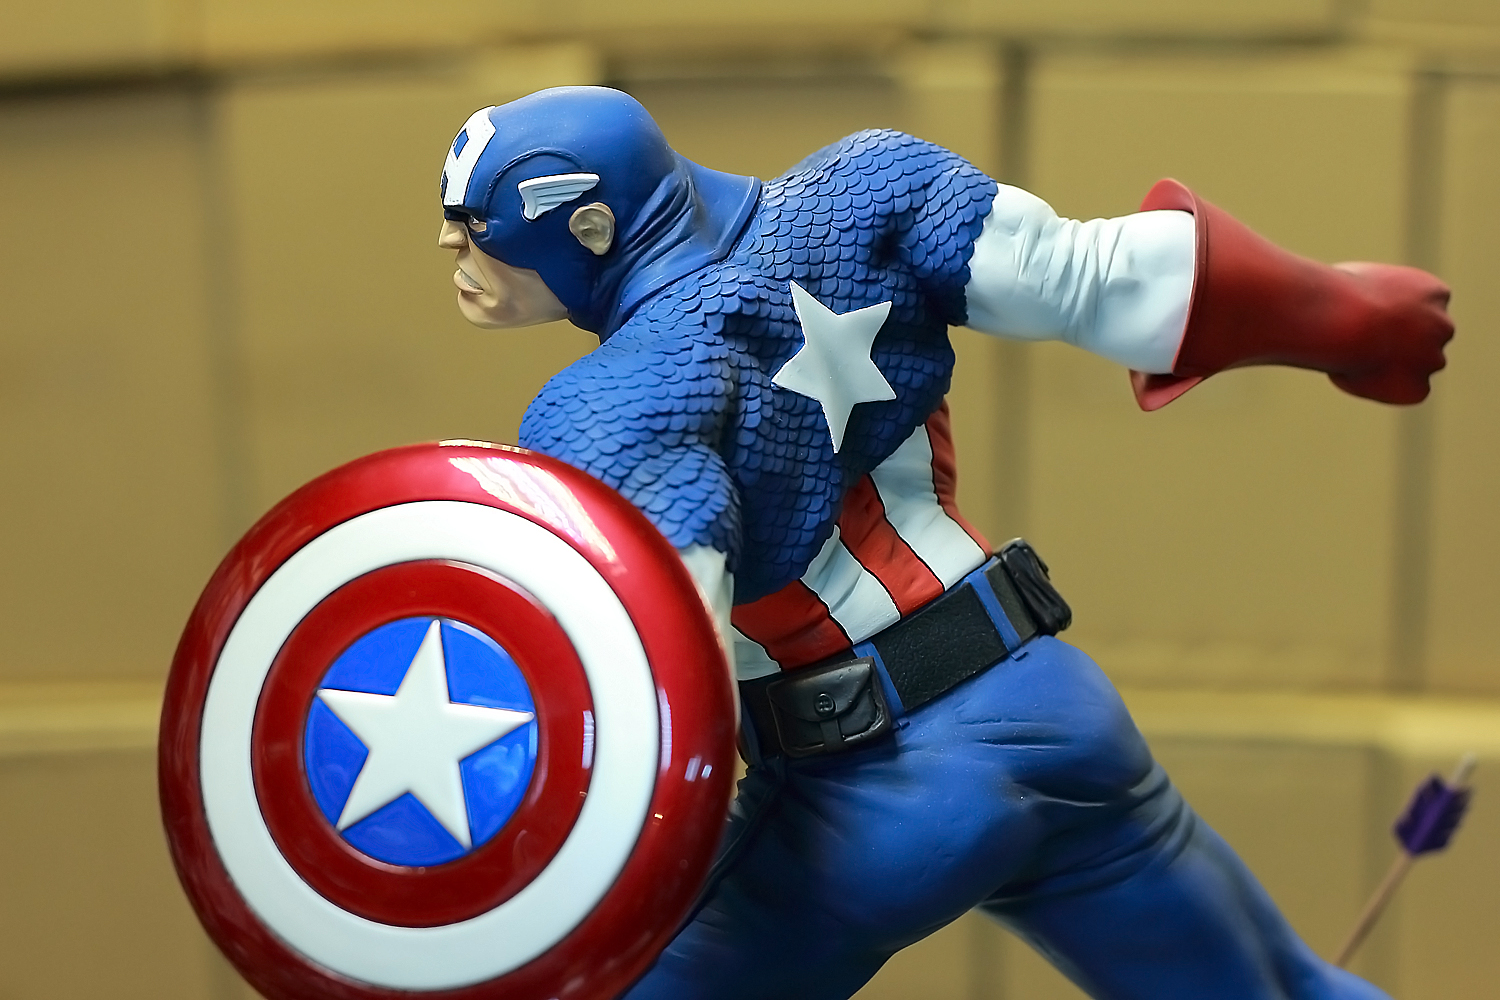 Captain America Painted 01 By Mufizal On DeviantArt